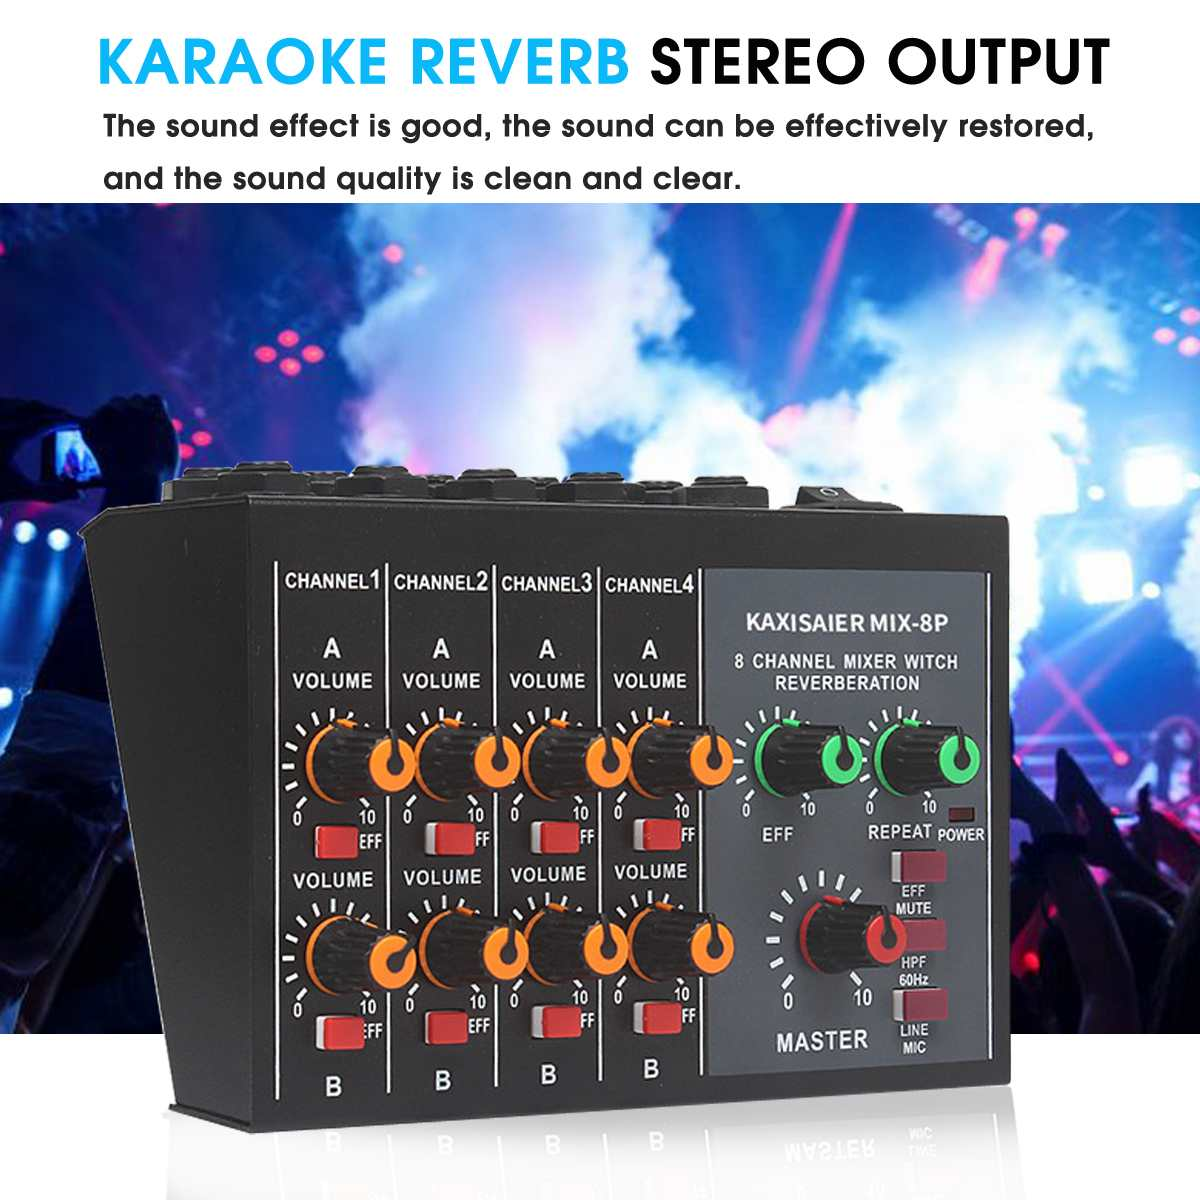 KINCO 100~220V Professional Mini Mixer 8 Channel Live Studio Audio KTV Karaoke Mixer Mixing Console 48V for Family KTVKINCO 100~220V Professional Mini Mixer 8 Channel Live Studio Audio KTV Karaoke Mixer Mixing Console 48V for Family KTV